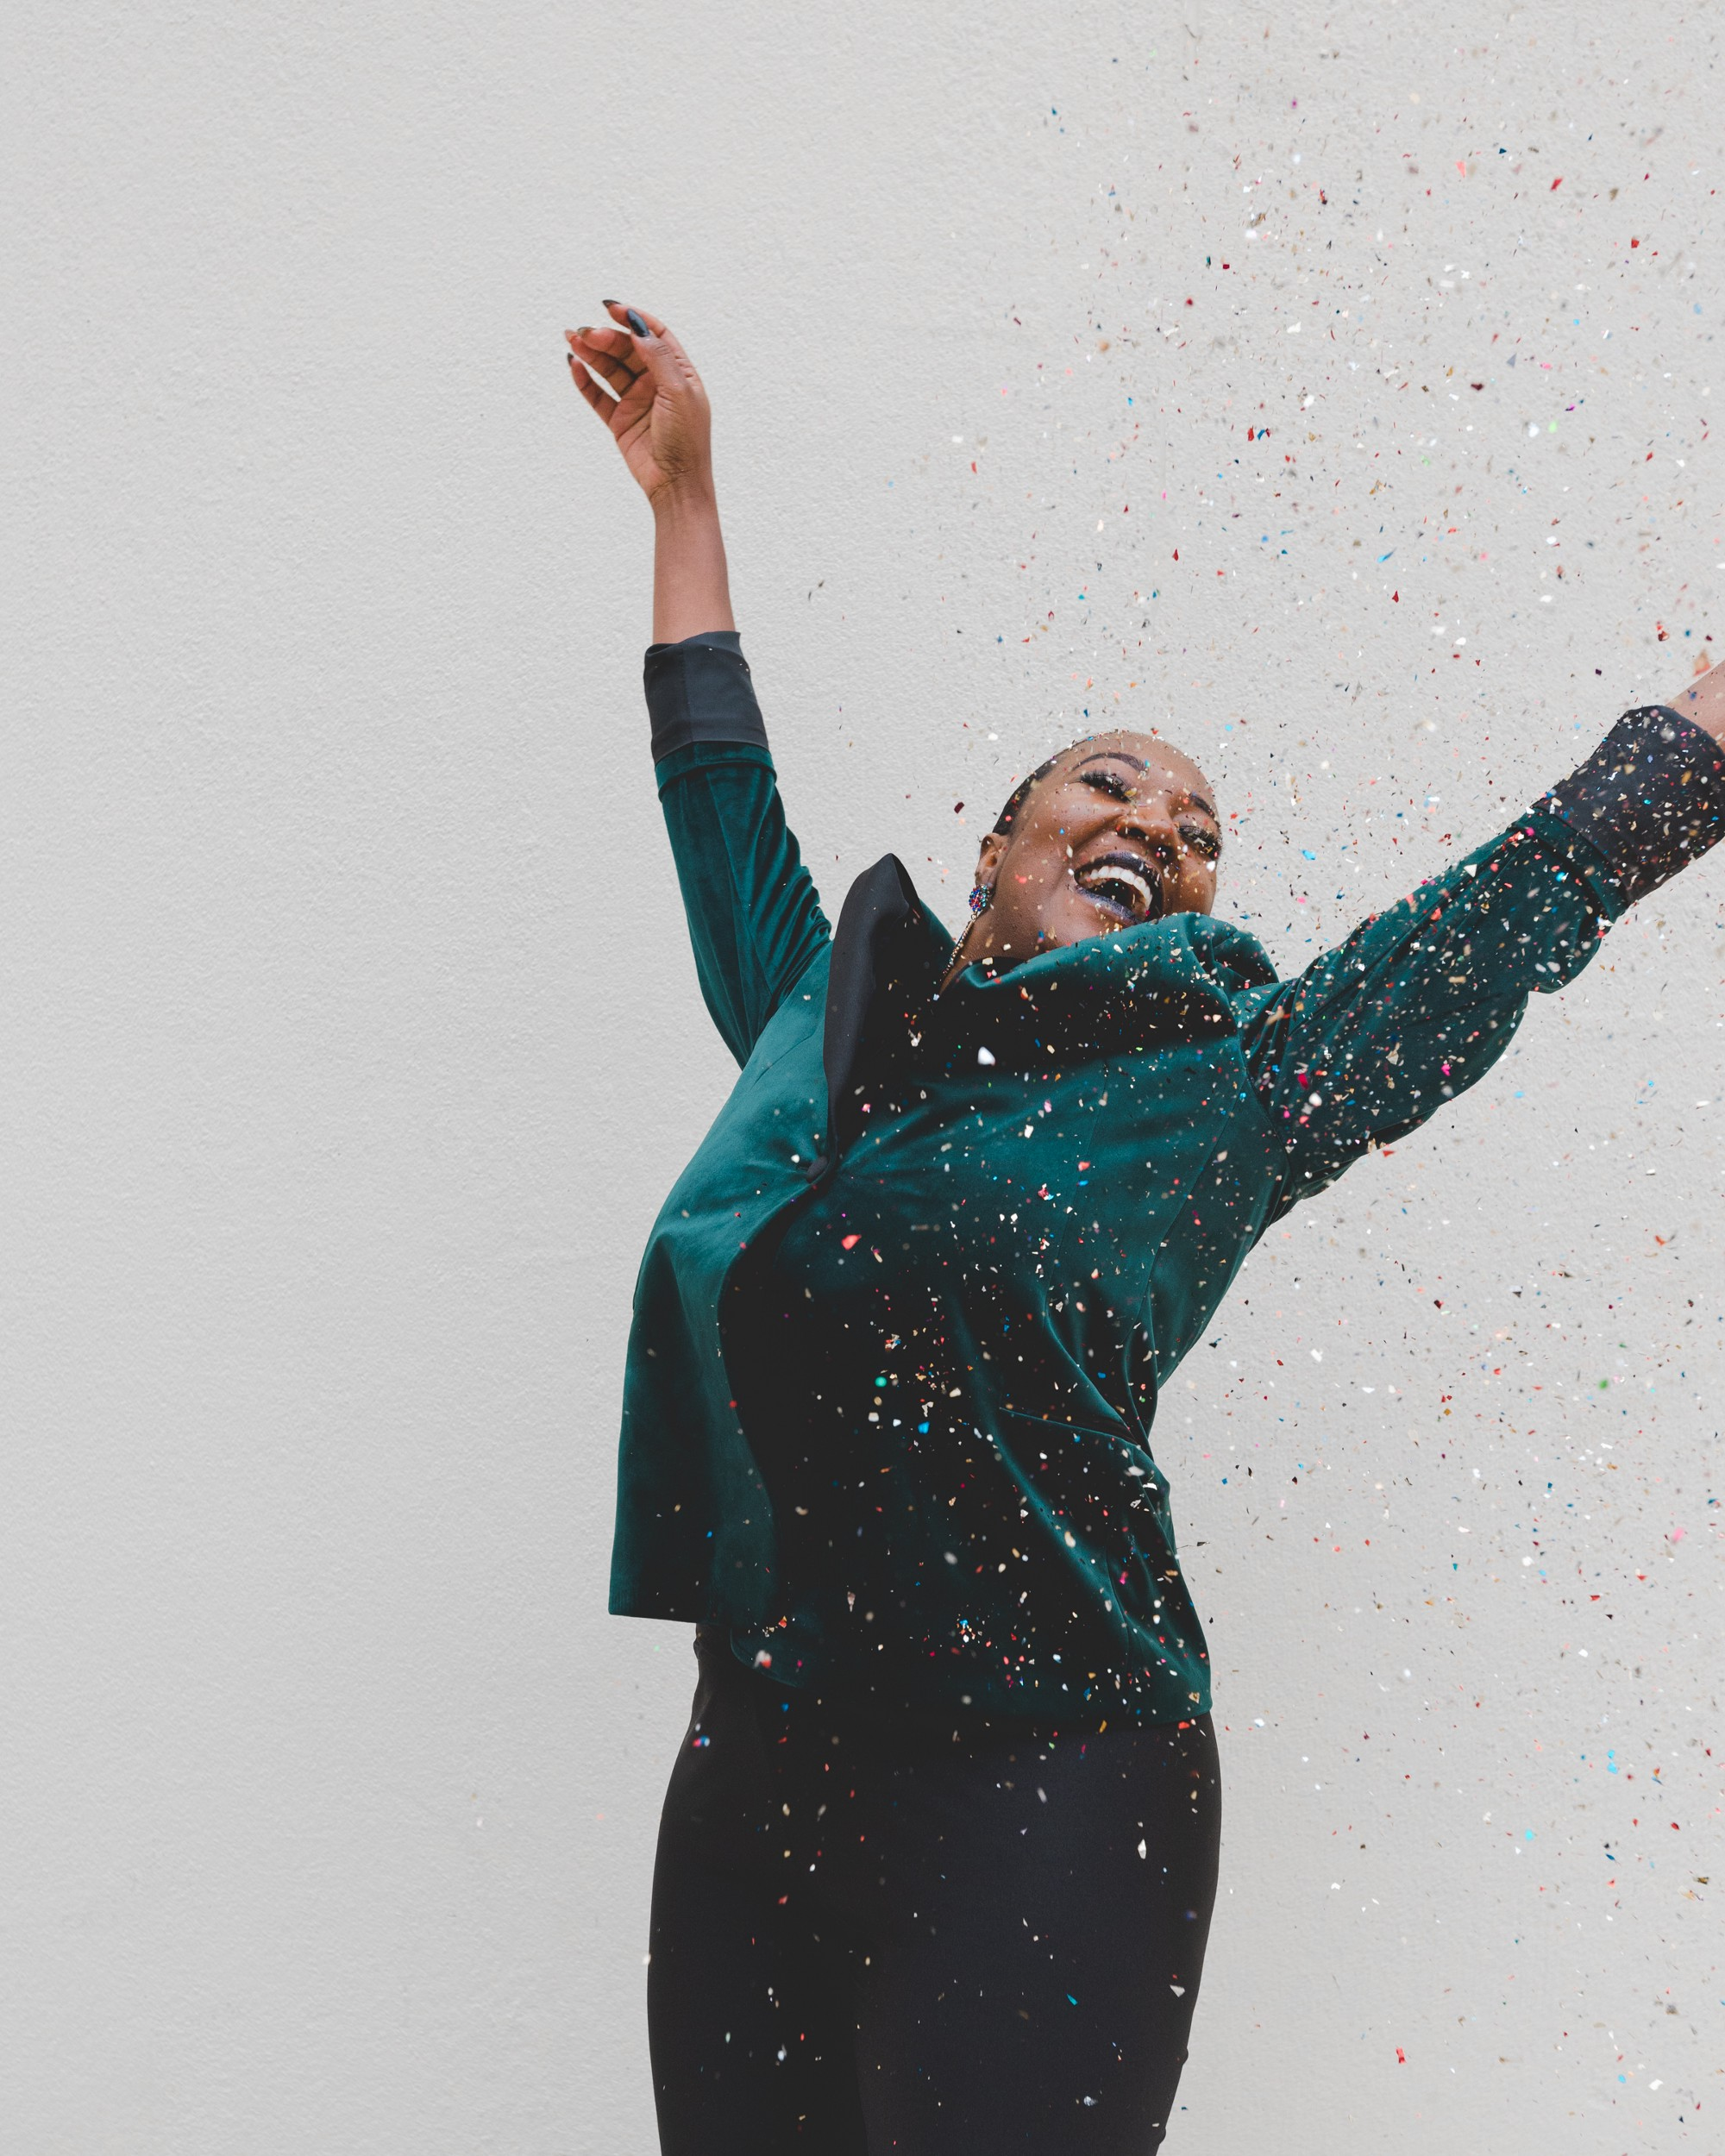 Lady in teal jacket jumping for joy as confetti blows over her. She gets paid $1 per word for freelance writing